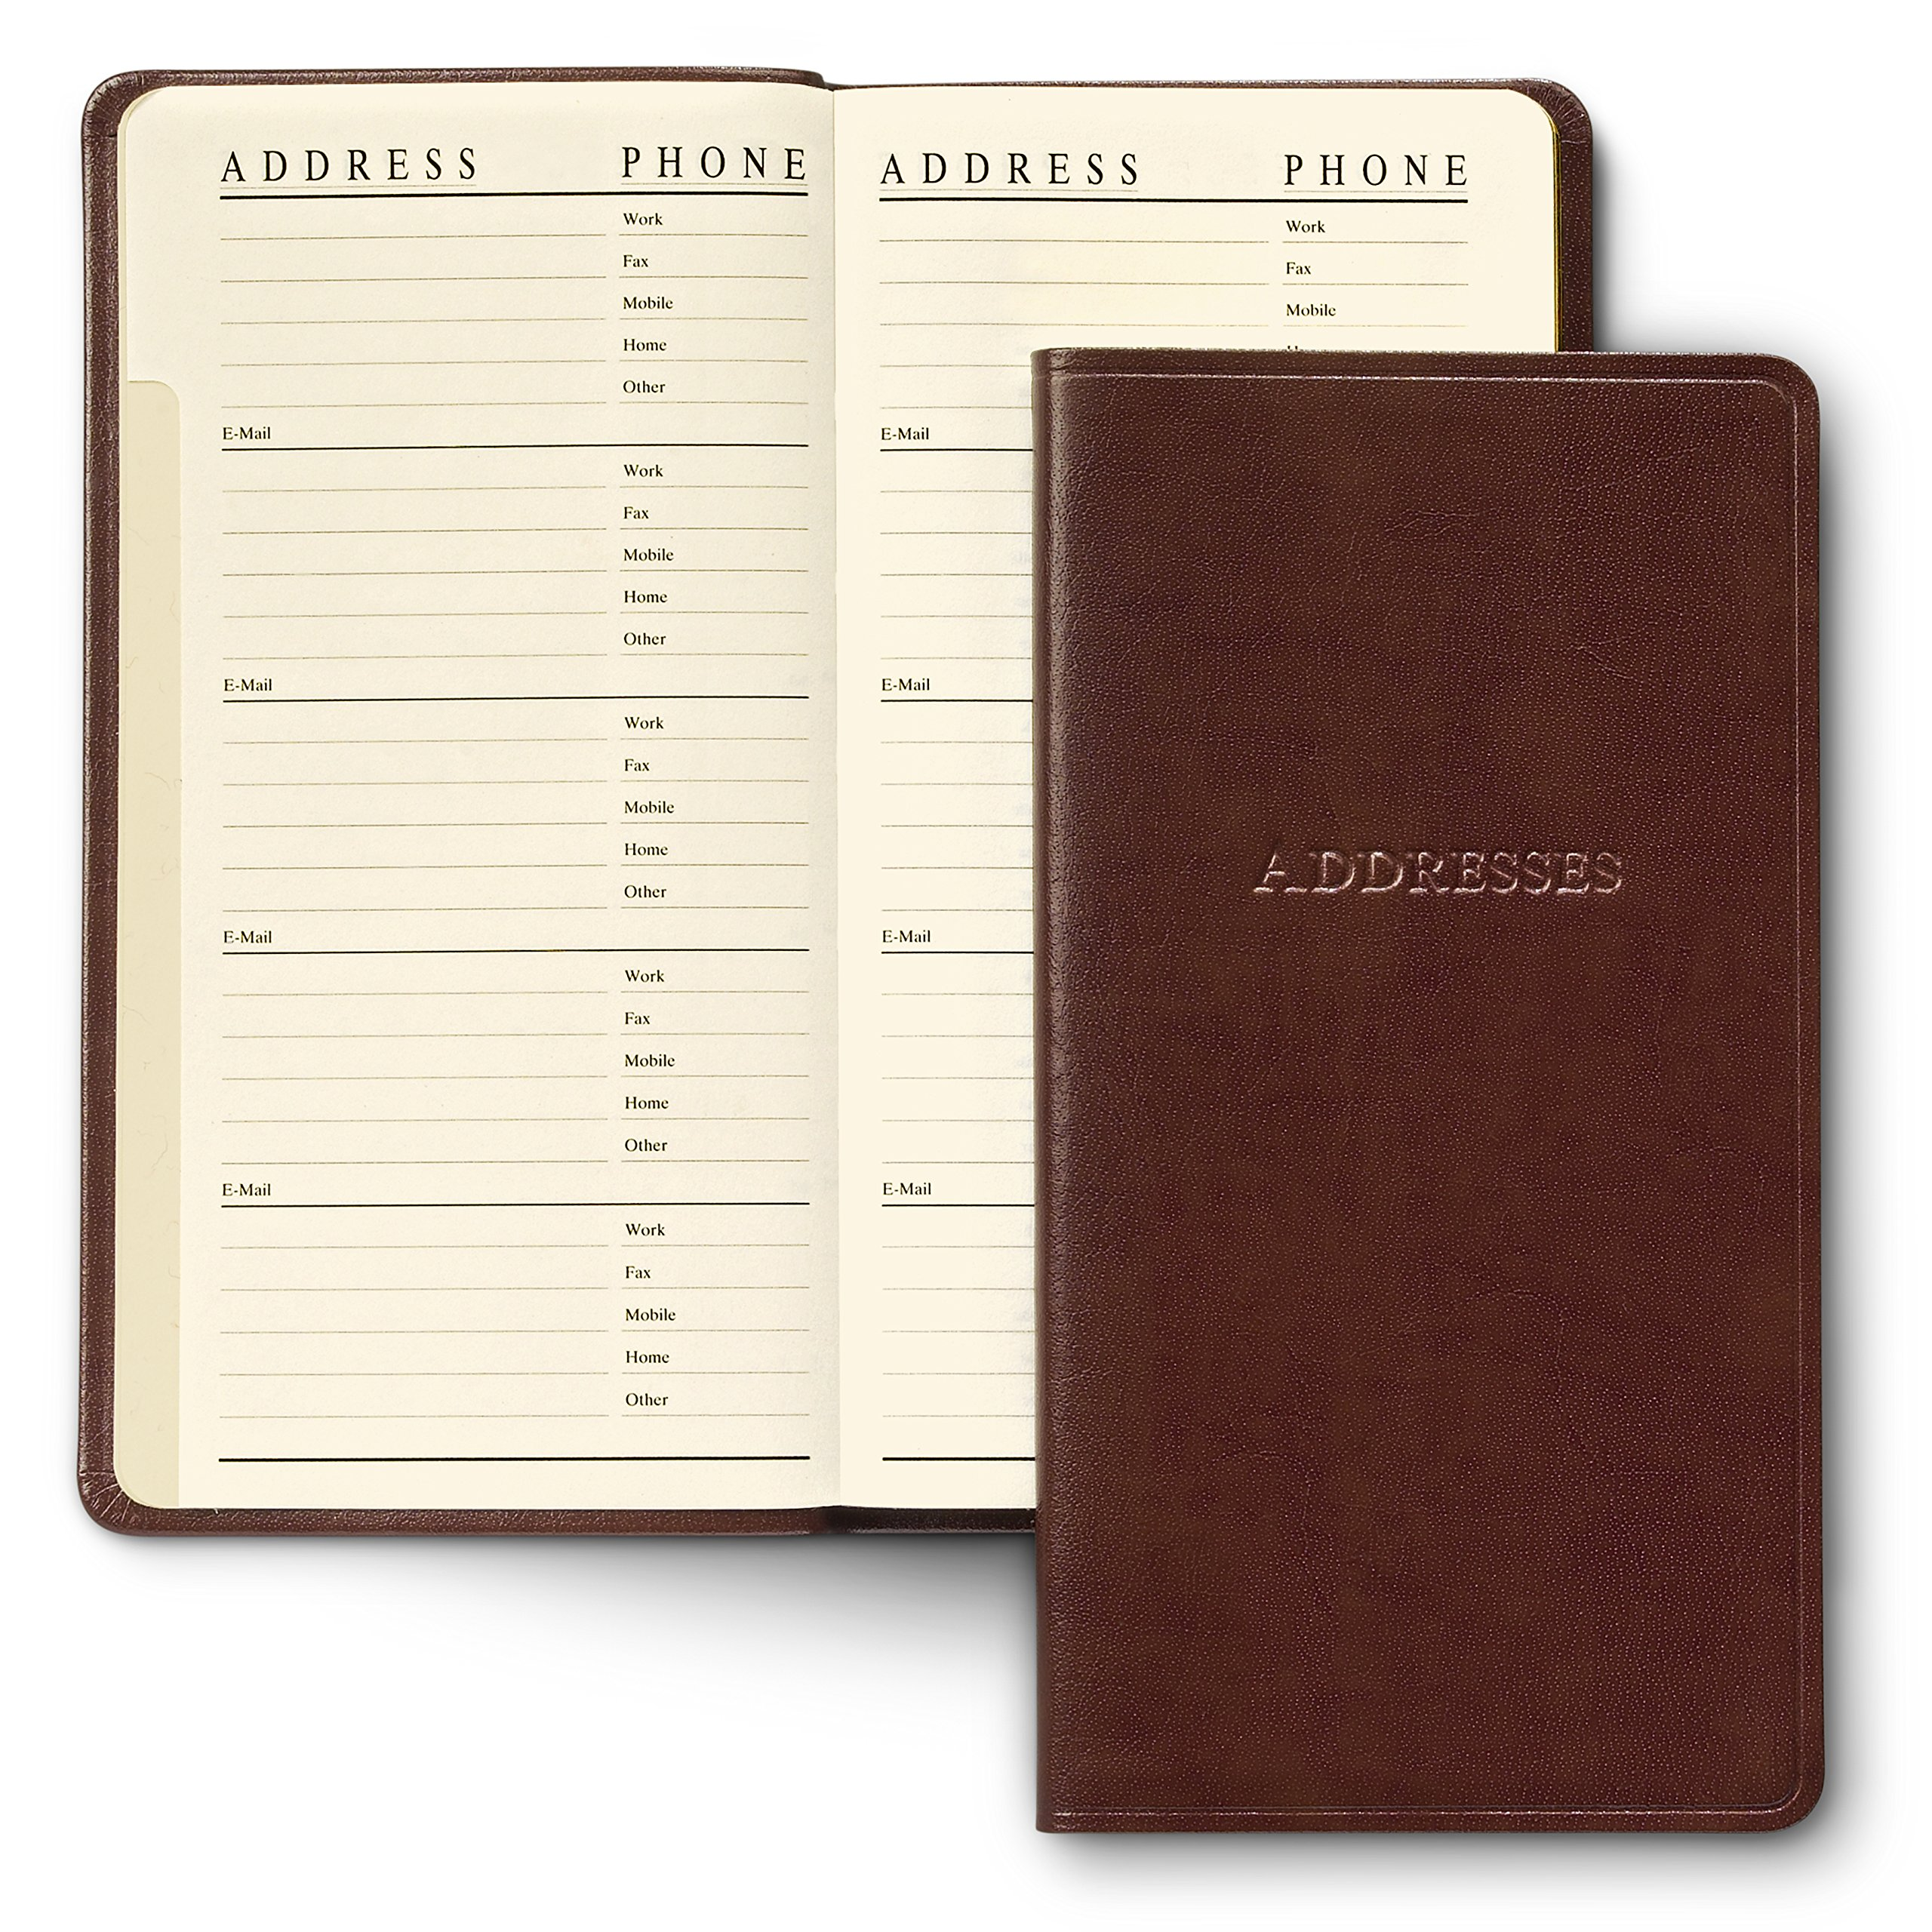 Gallery Leather Pocket Address Organizer Acadia Burgundy by Gallery Leather (Image #2)